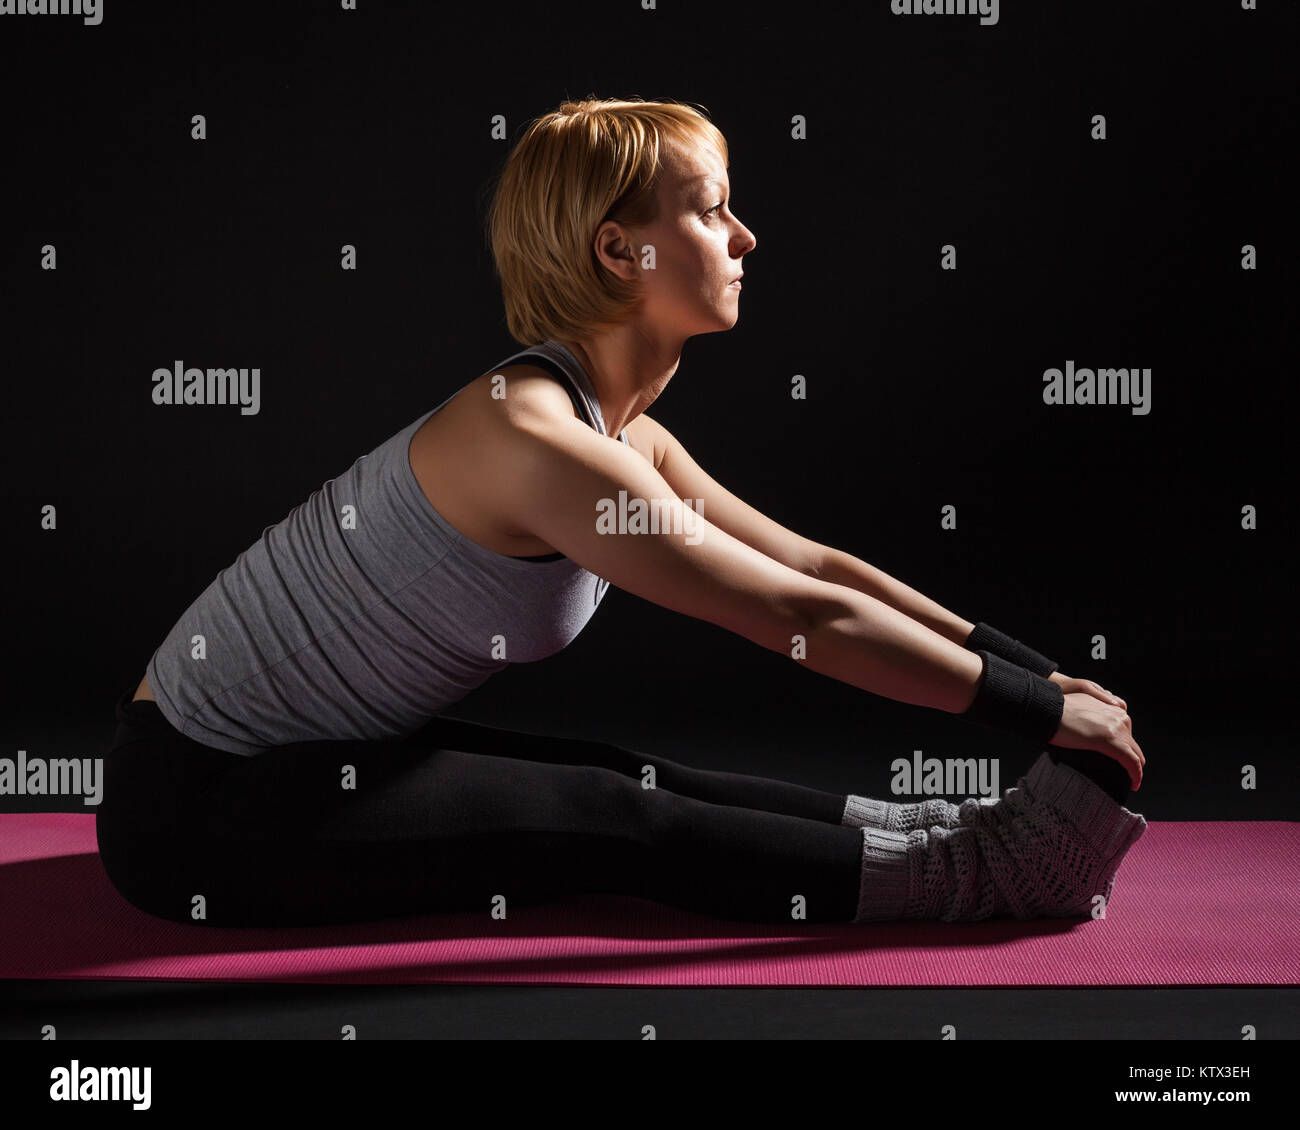 Young woman practicing yoga,  Paschimottanasana / Seated Forward Bend pose - Stock Image